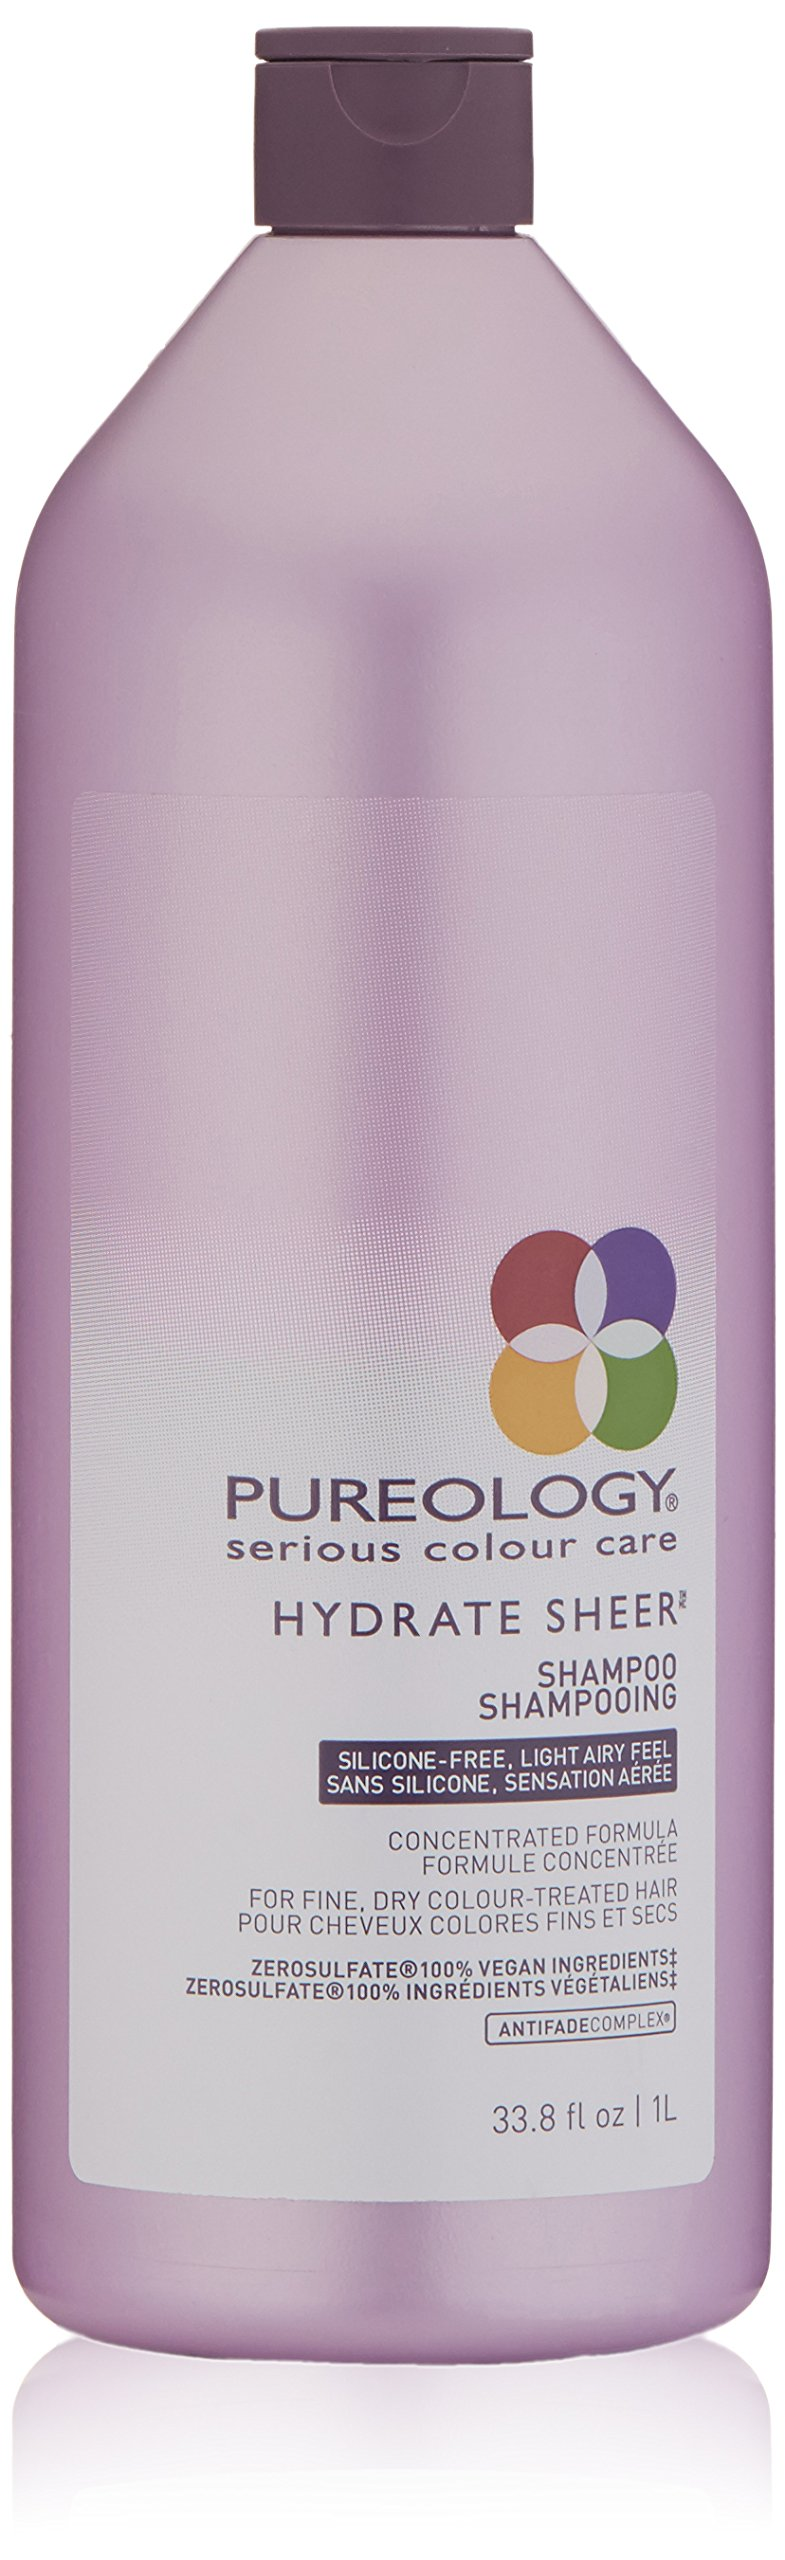 Pureology Hydrate Sheer Shampoo, 33.8 Fl Oz by Pureology (Image #1)